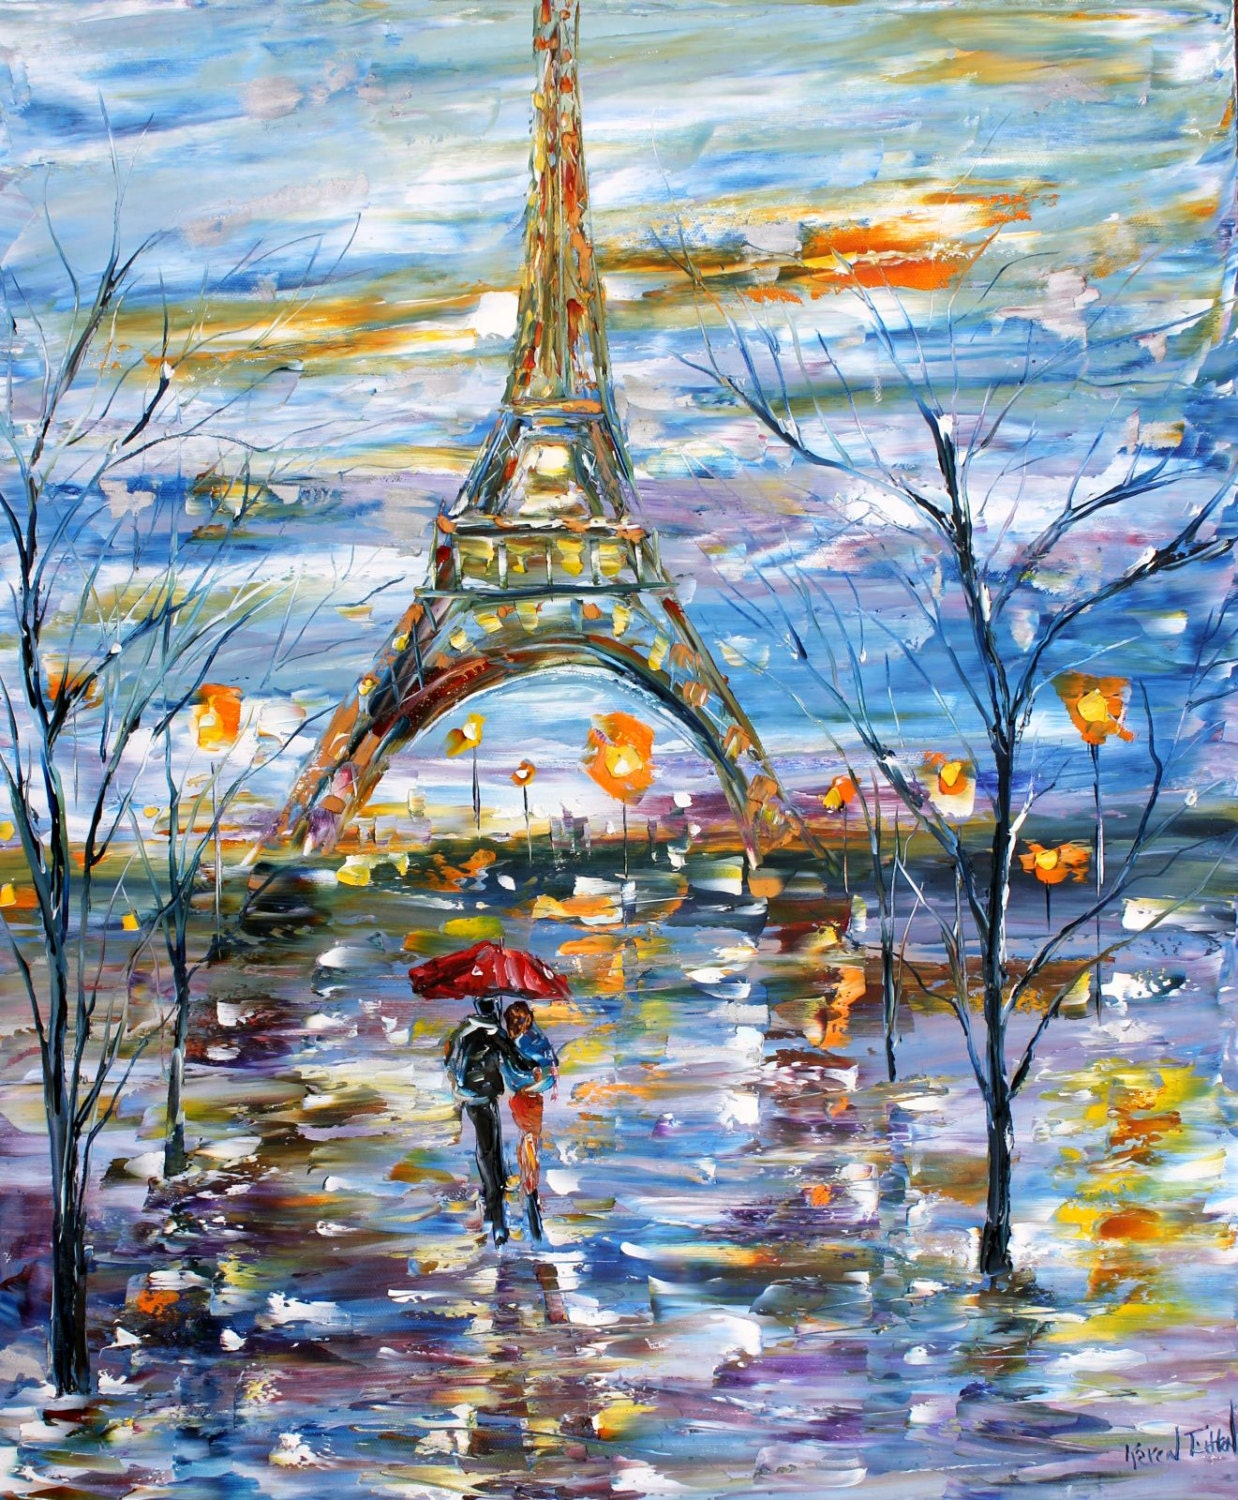 Impressionism Paris: Unavailable Listing On Etsy